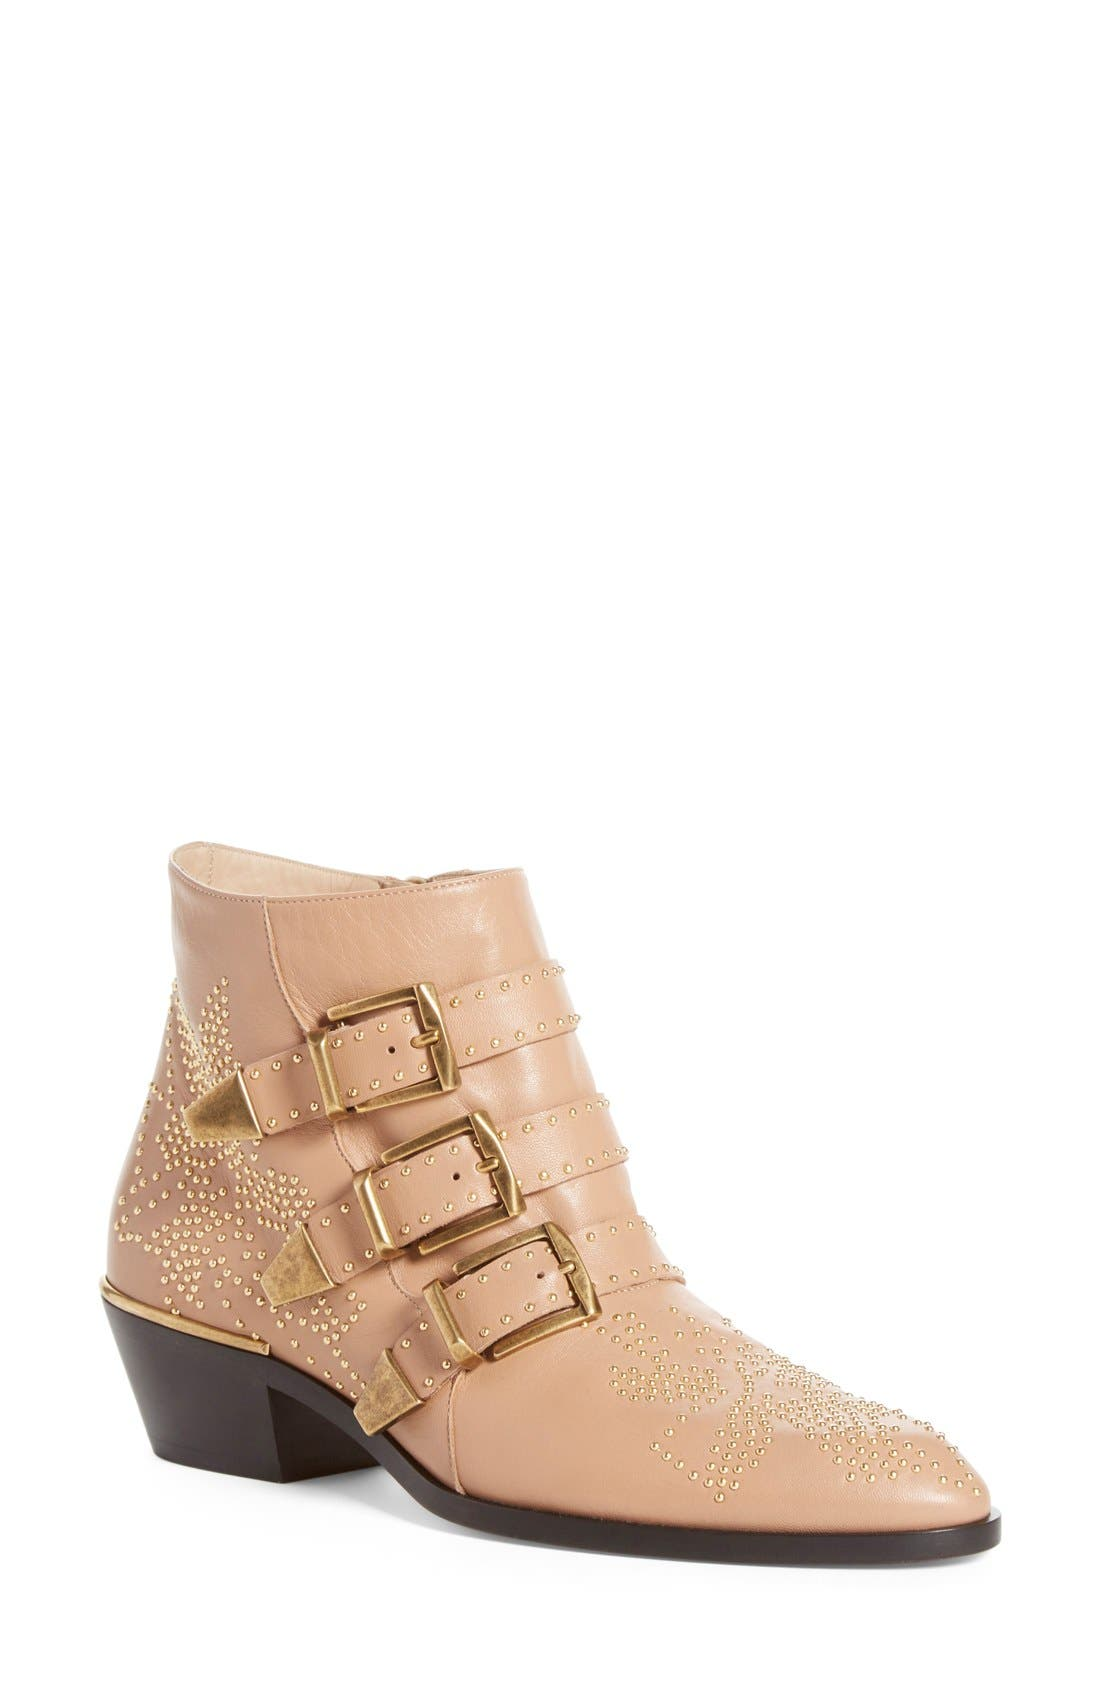 Susanna Stud Buckle Bootie,                         Main,                         color, Beige Gold Leather